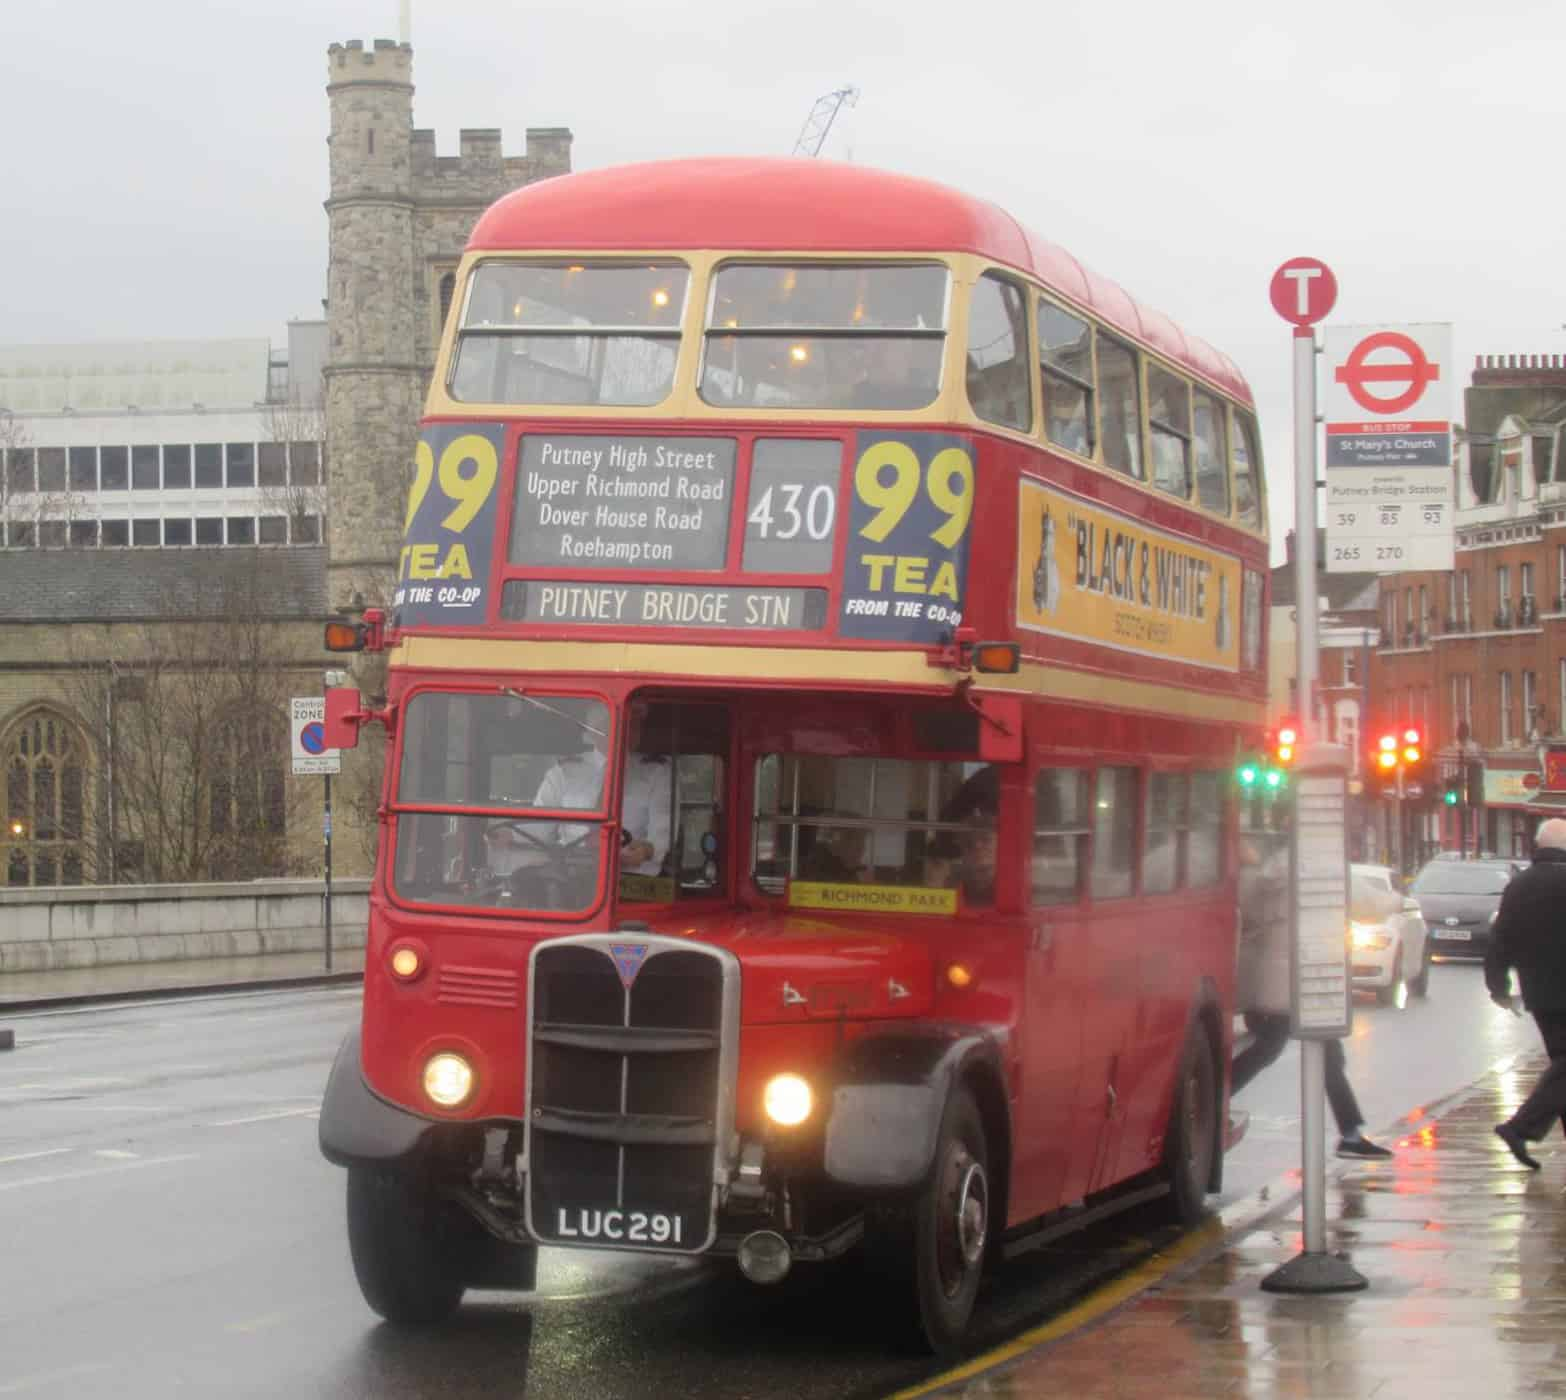 Our classic RT bus on Route 430 Roehampton to Putney Bridge